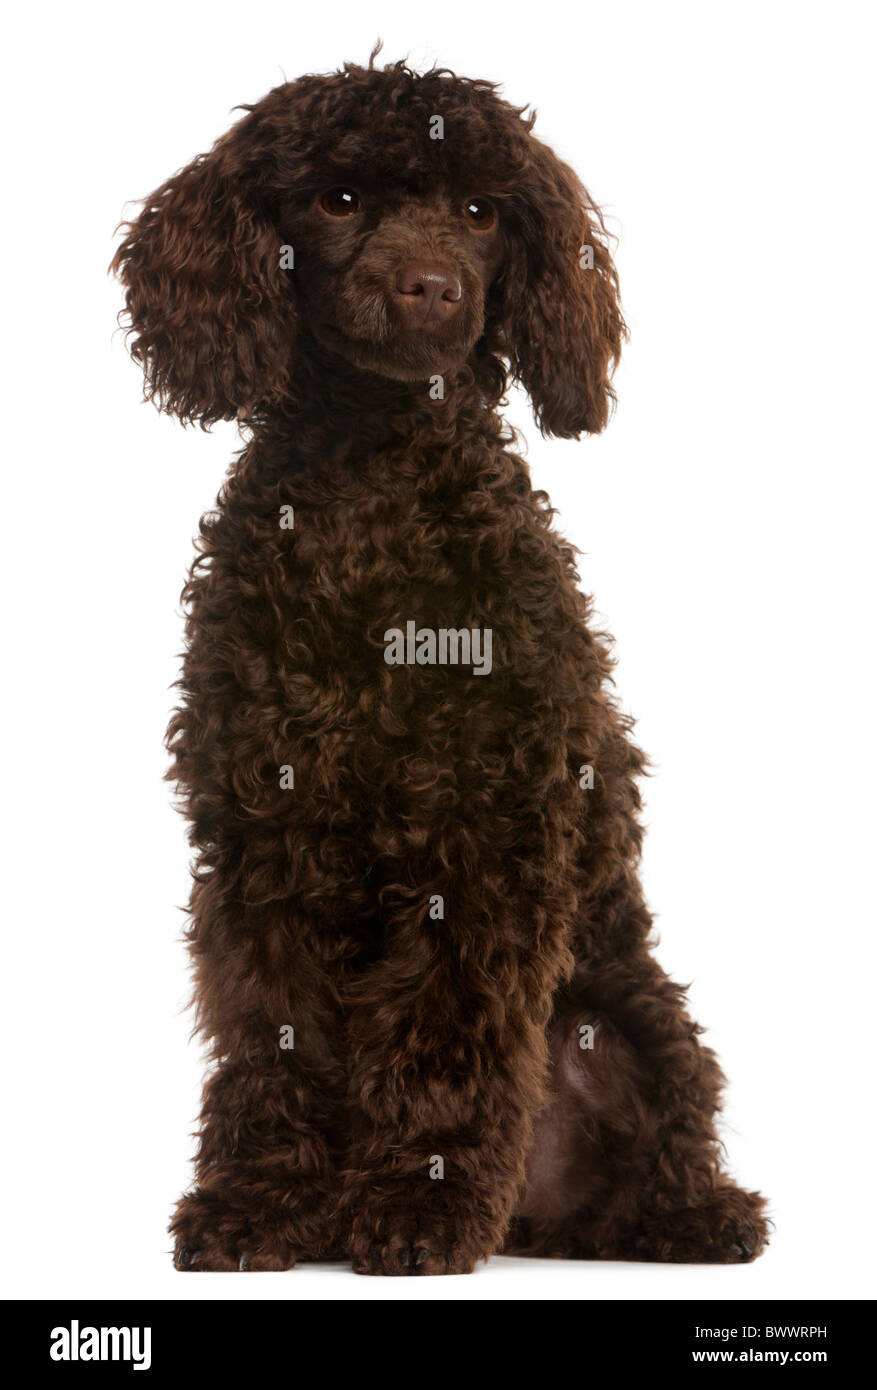 Poodle, 5 months old, sitting in front of white background - Stock Image